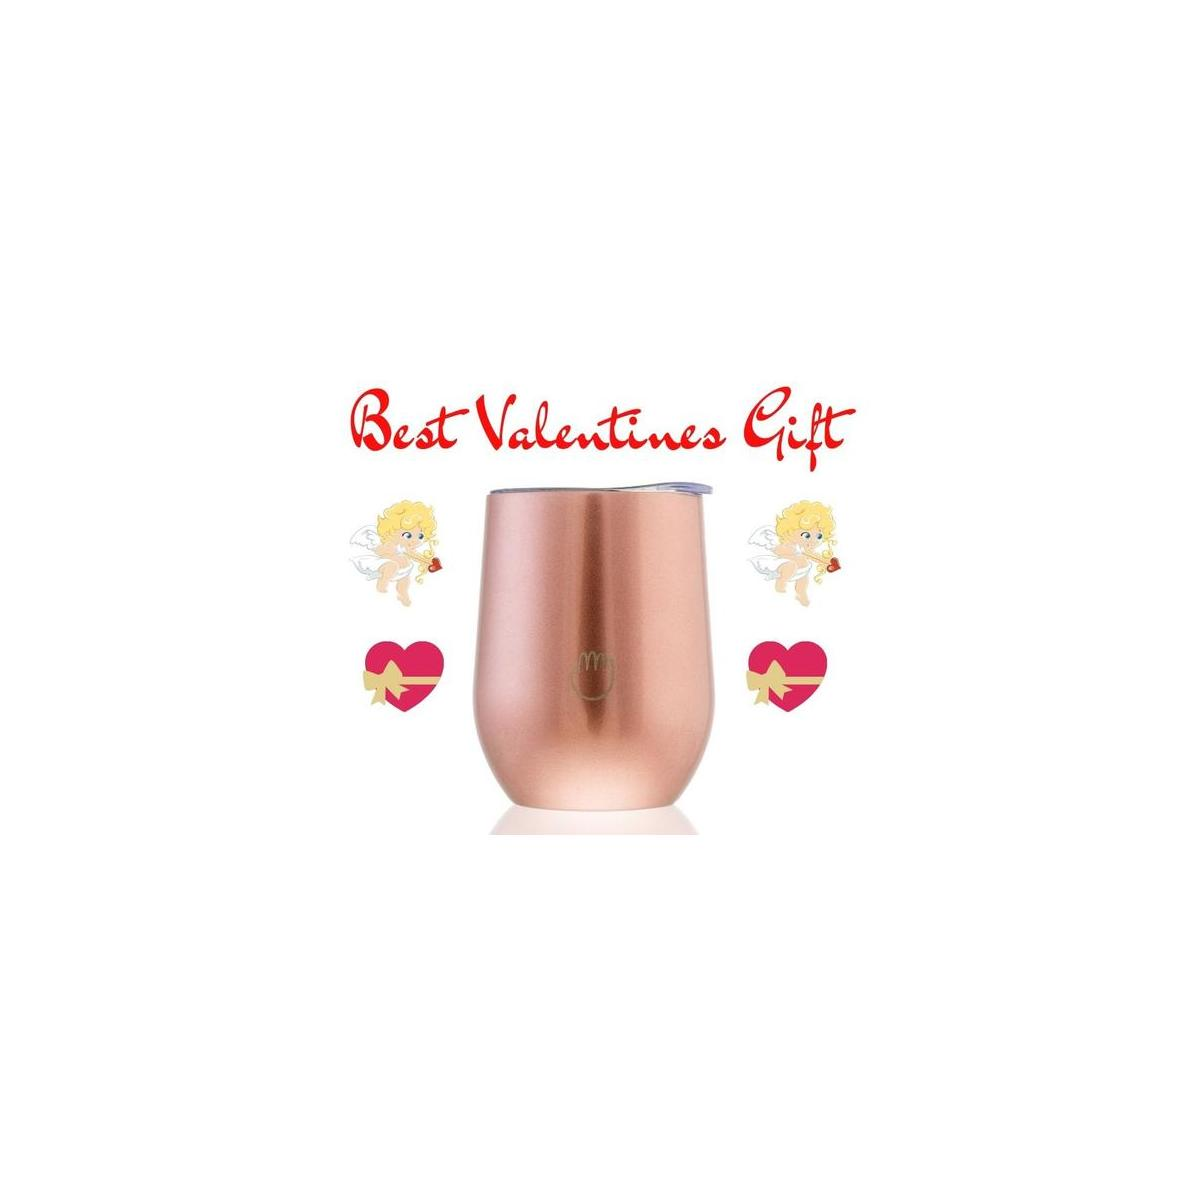 12 Oz Stainless Steel Tumbler| Valentines day | insulated | Leak-Proof Silicon Lid | Zero-Waste | Eco-Friendly | Double Metal Wall | Easy Traveling | Stemless Wine Glass | Tea Coffee Tumbler | gift | Black Tumbler